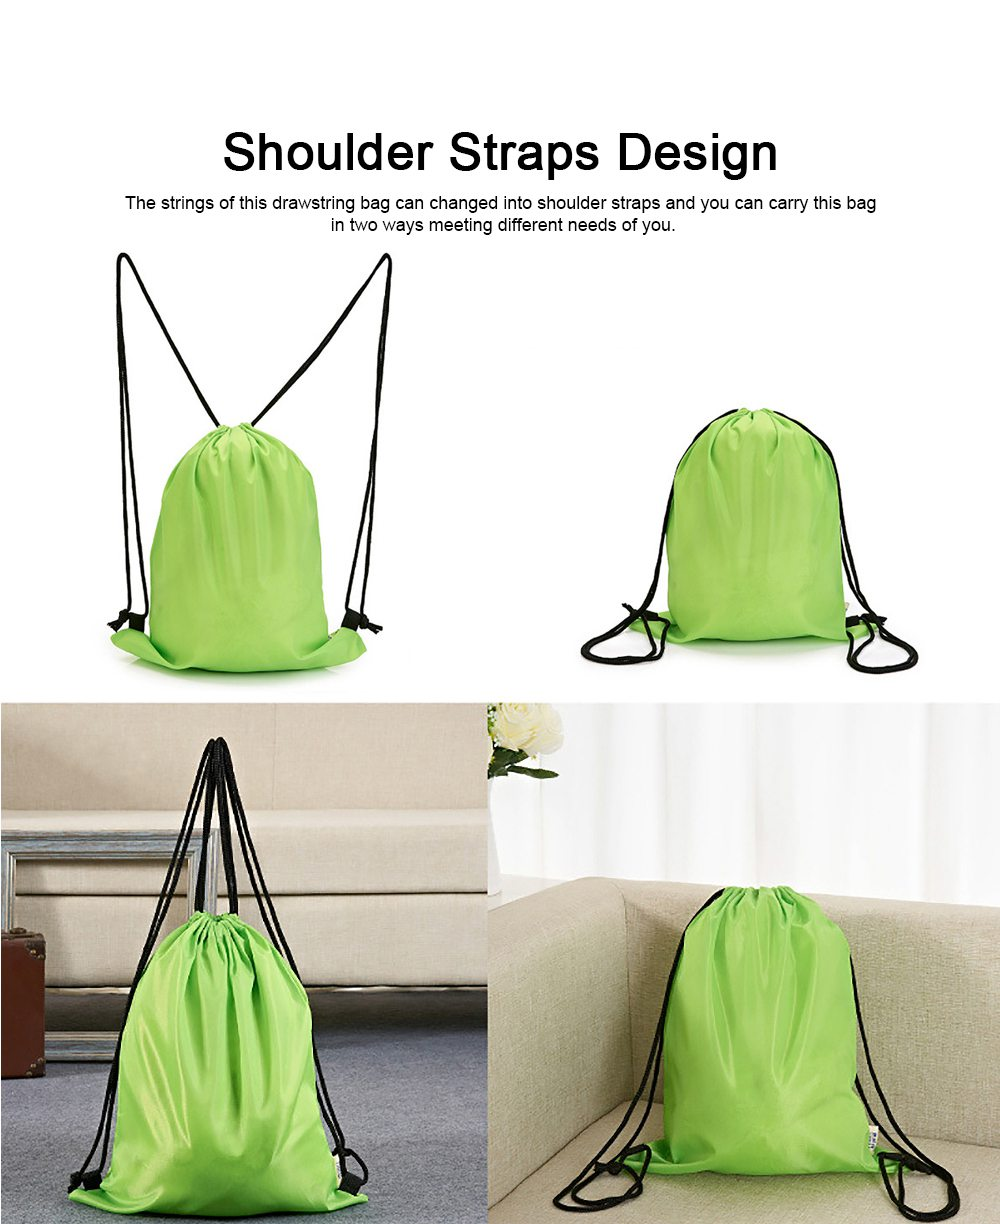 Minimalist Waterproof Moisture-proof Drawstring Shoulders Bag for Storing Picnic Mat Daily Objects Outdoors Accessories 4